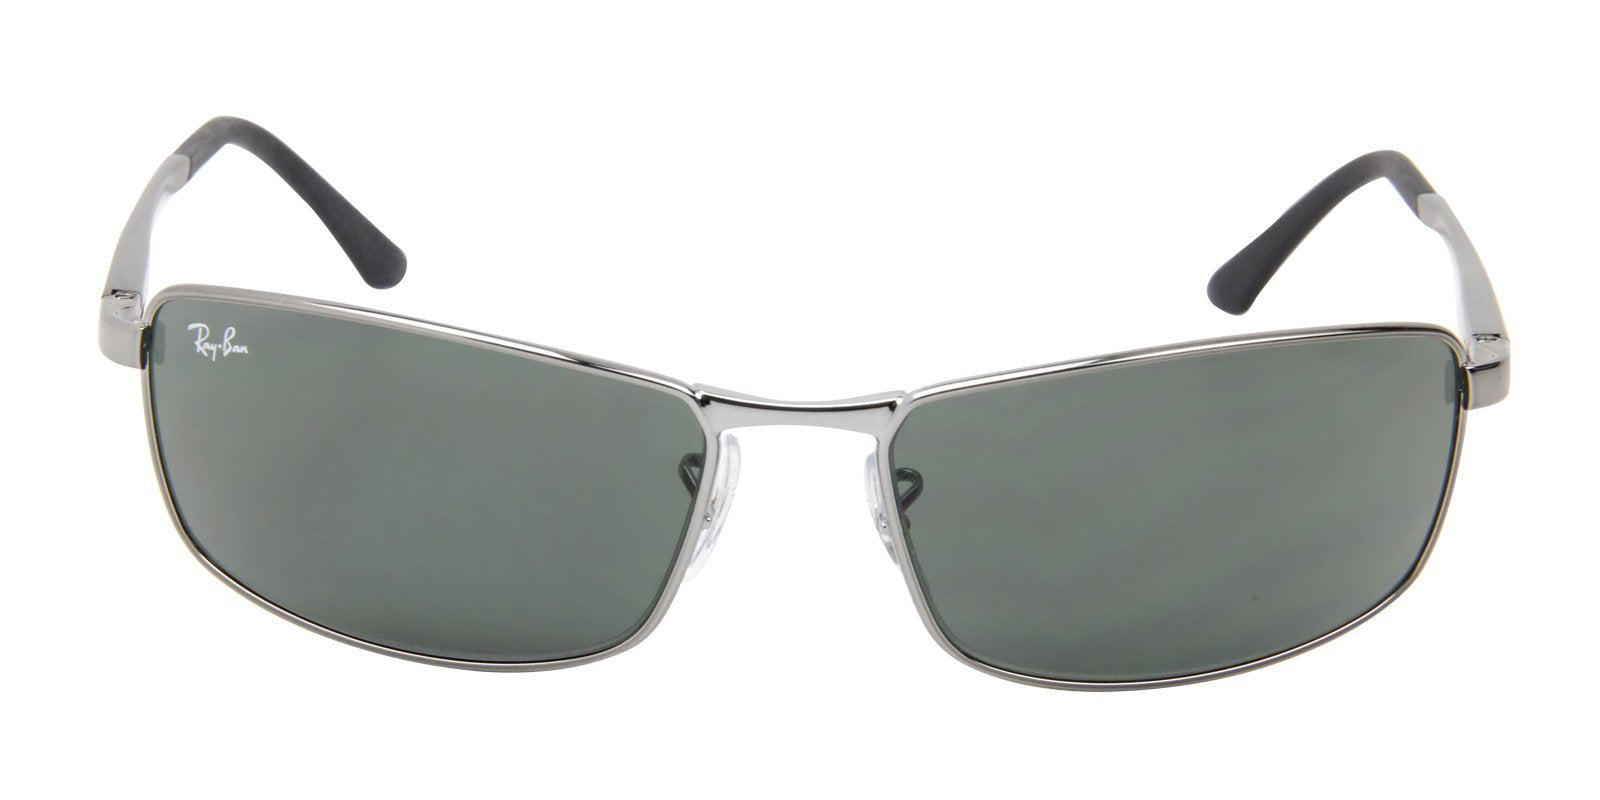 Ray Ban - RB3498 Gray Rectangular Men Sunglasses - 61mm